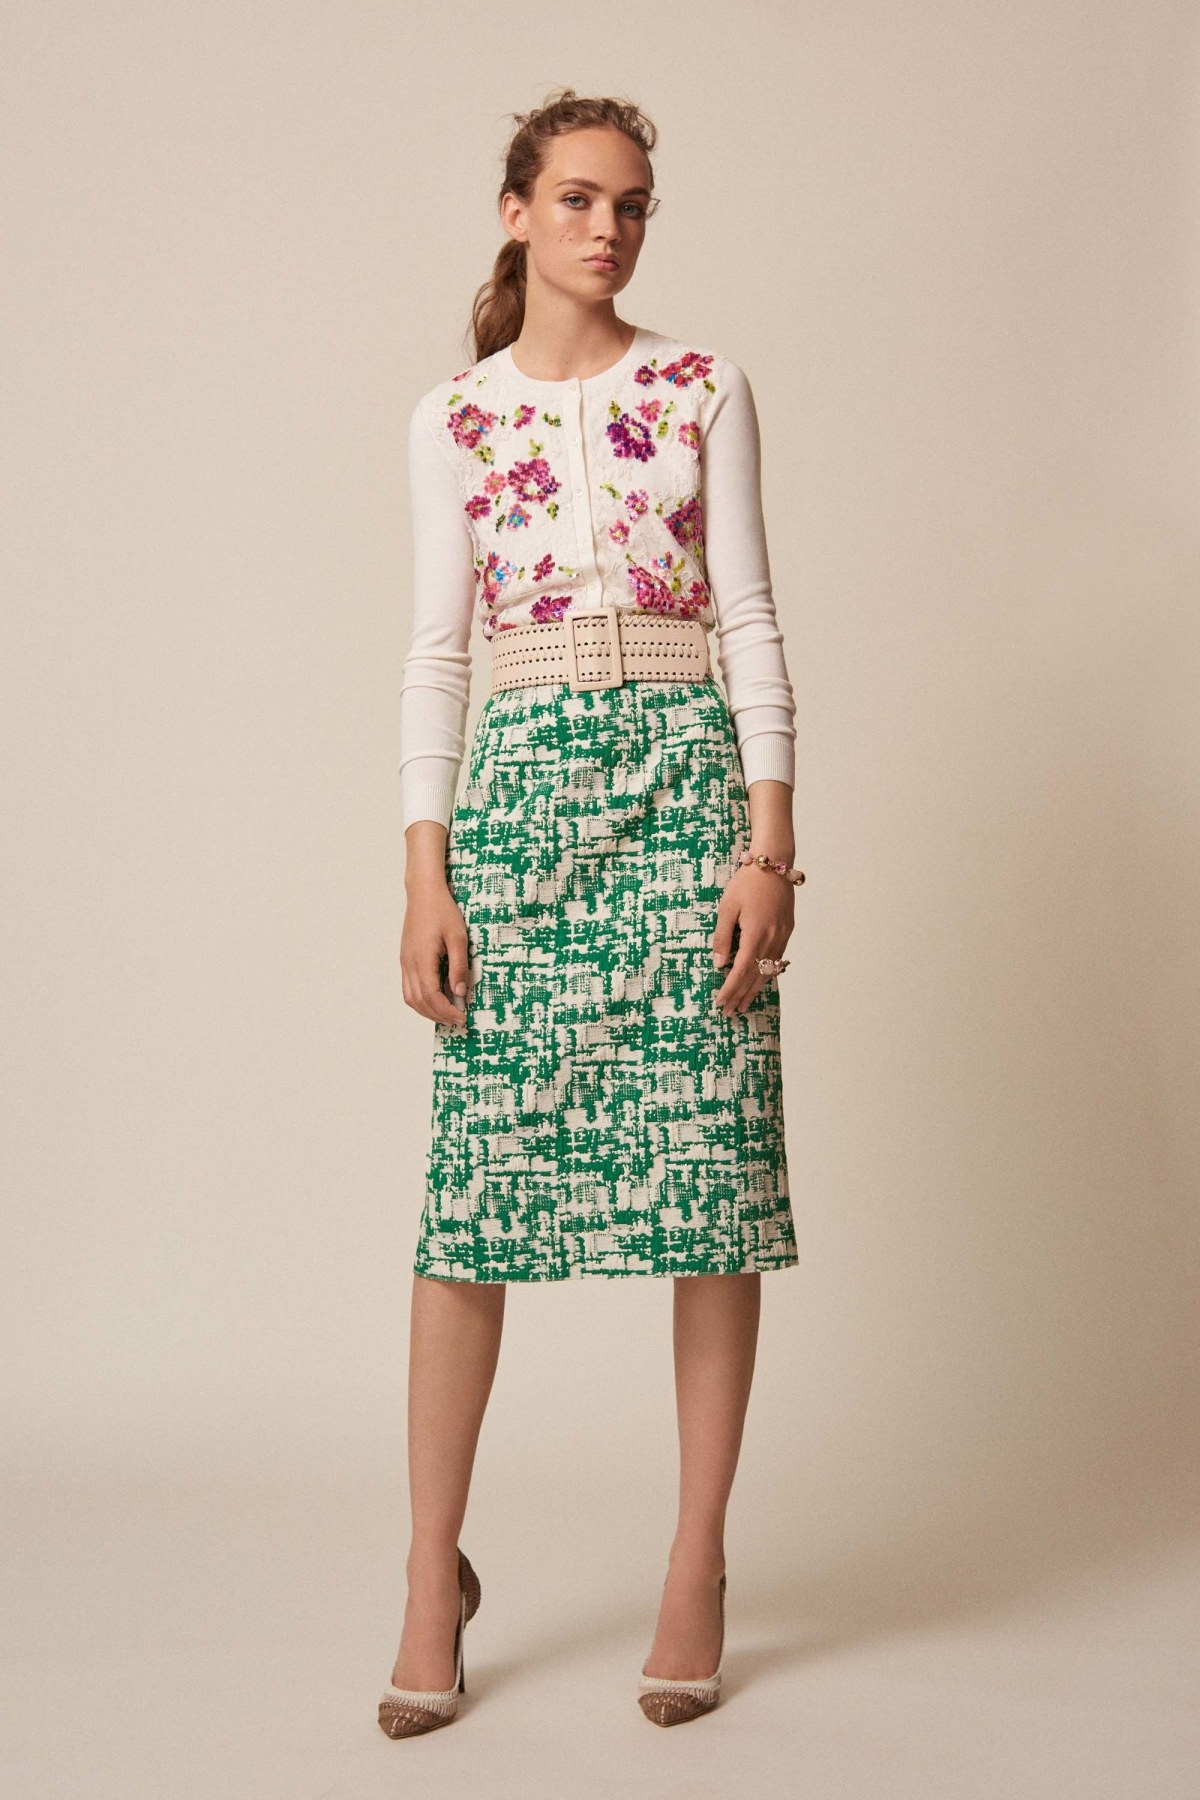 Oscar-de-la-Renta-fashion-show-resort-2017-ready-to-wear-the-impression-19